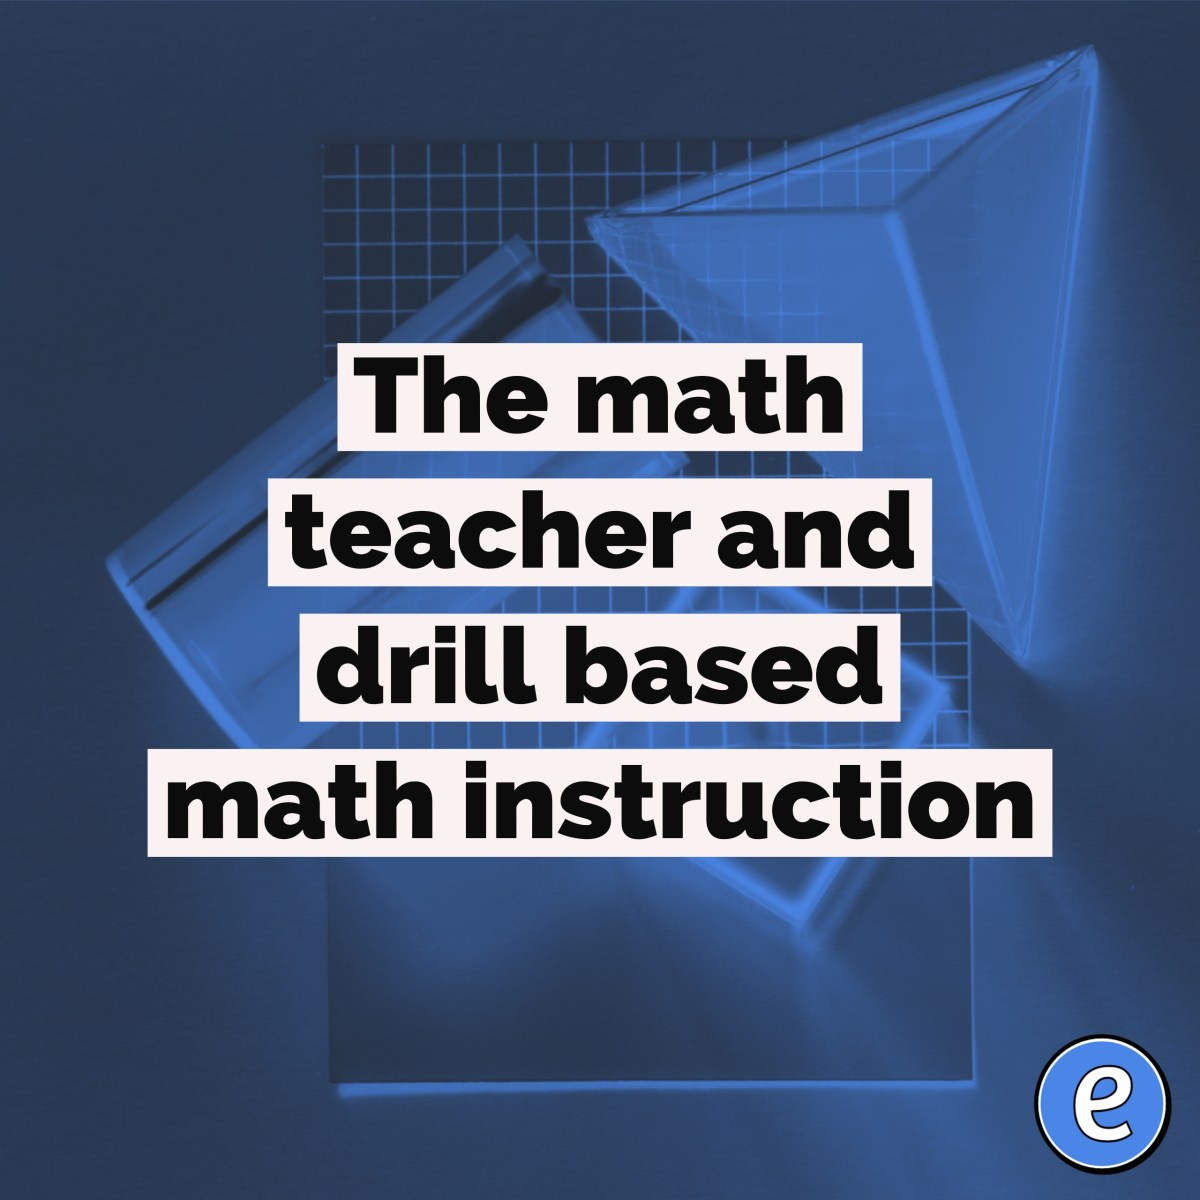 The math teacher and drill based math instruction